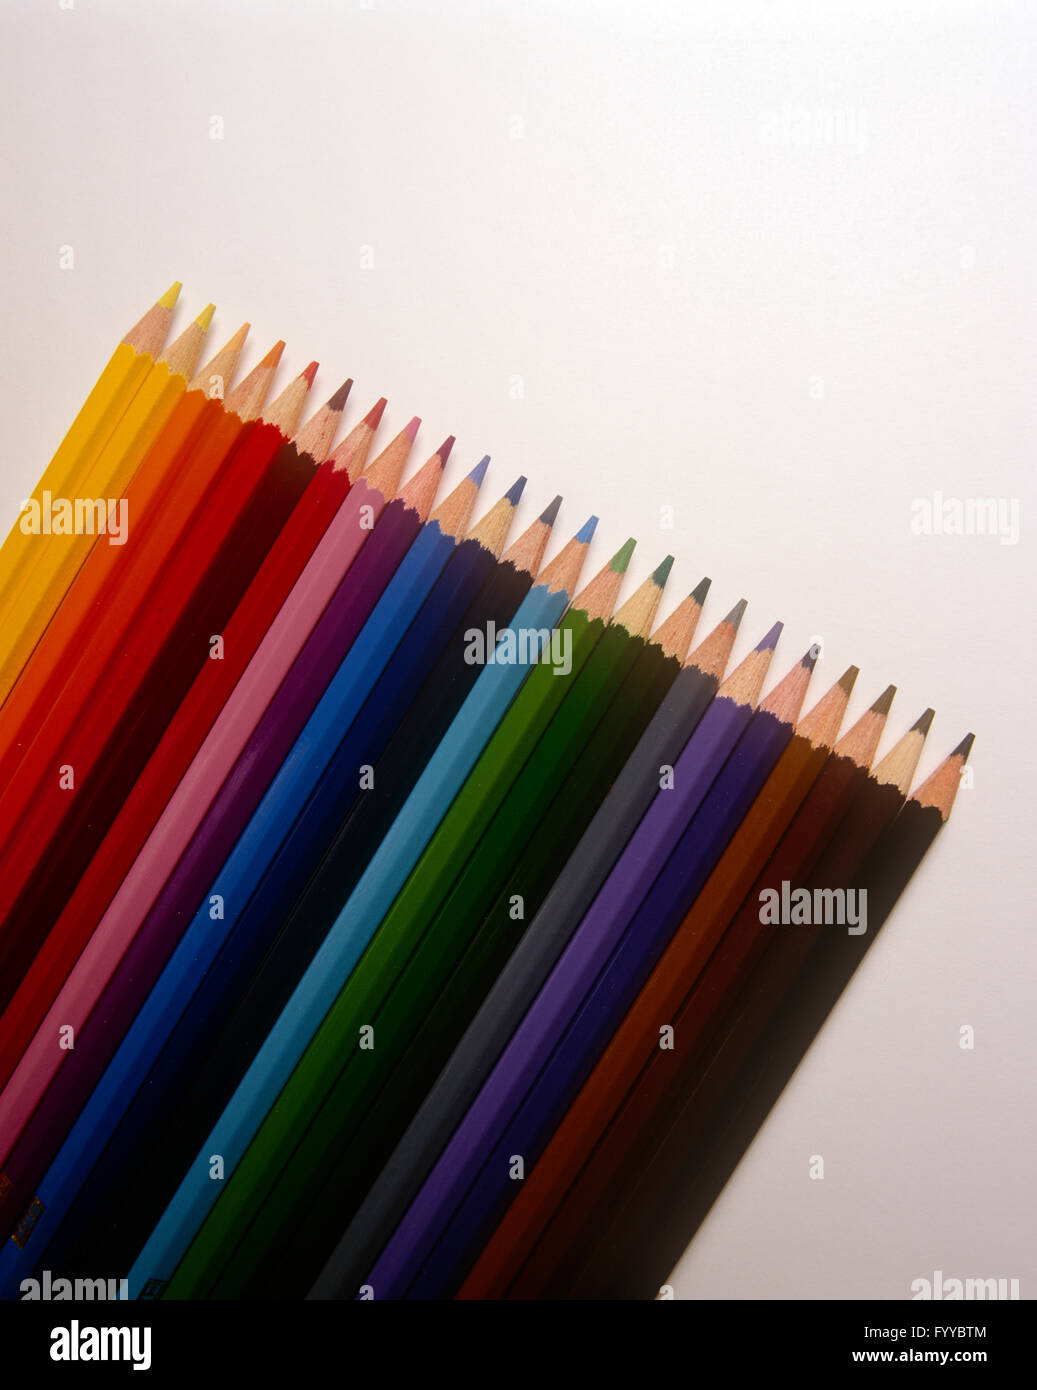 Multi-coloured pencils in a line, inside. - Stock Image